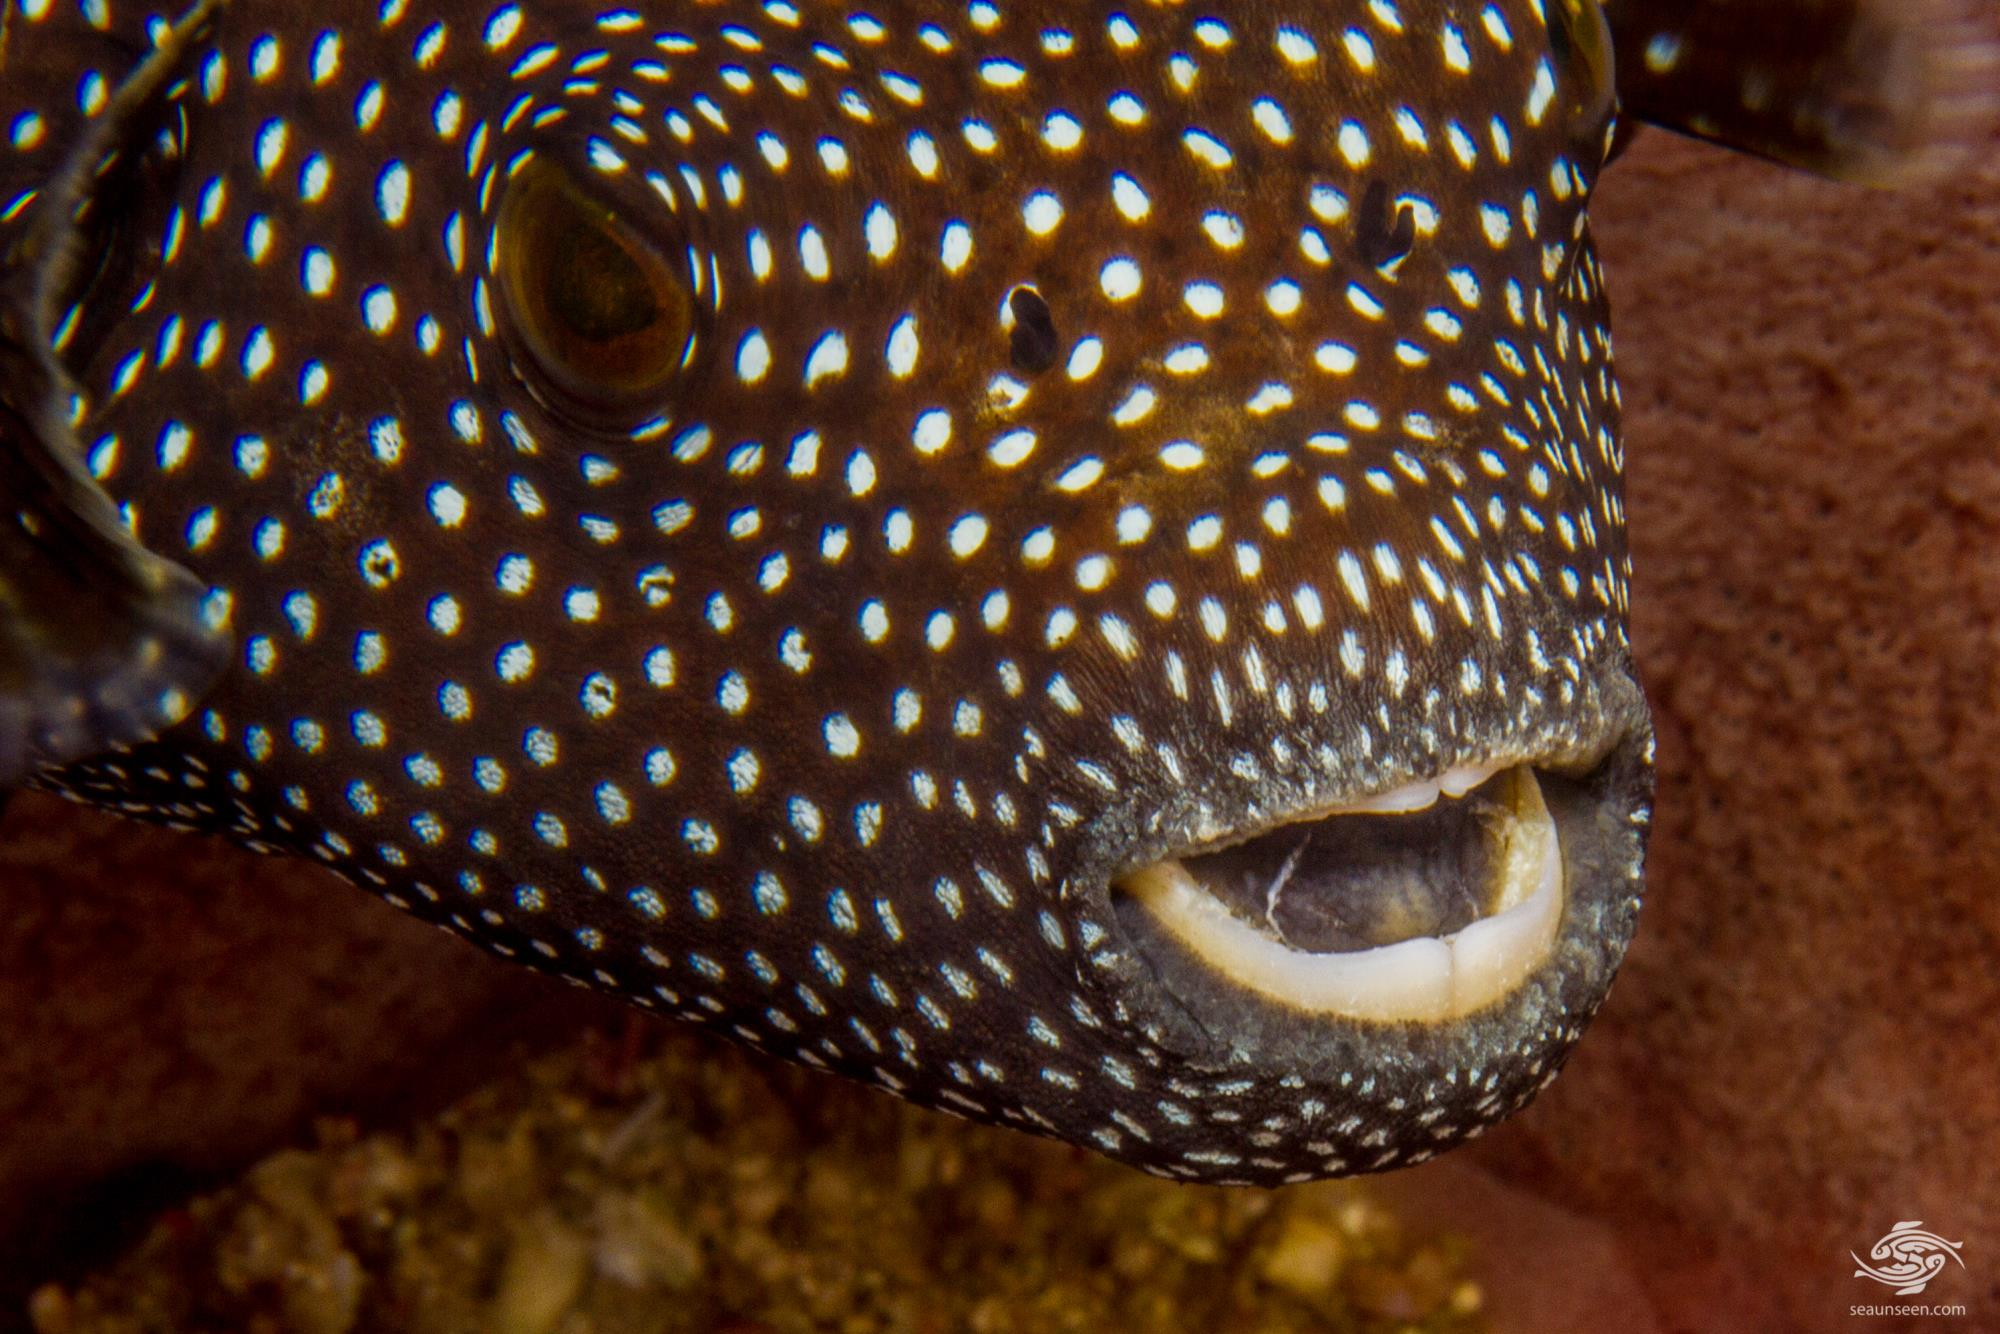 Guineafowl pufferfish or golden pufferfish, Arothron meleagris